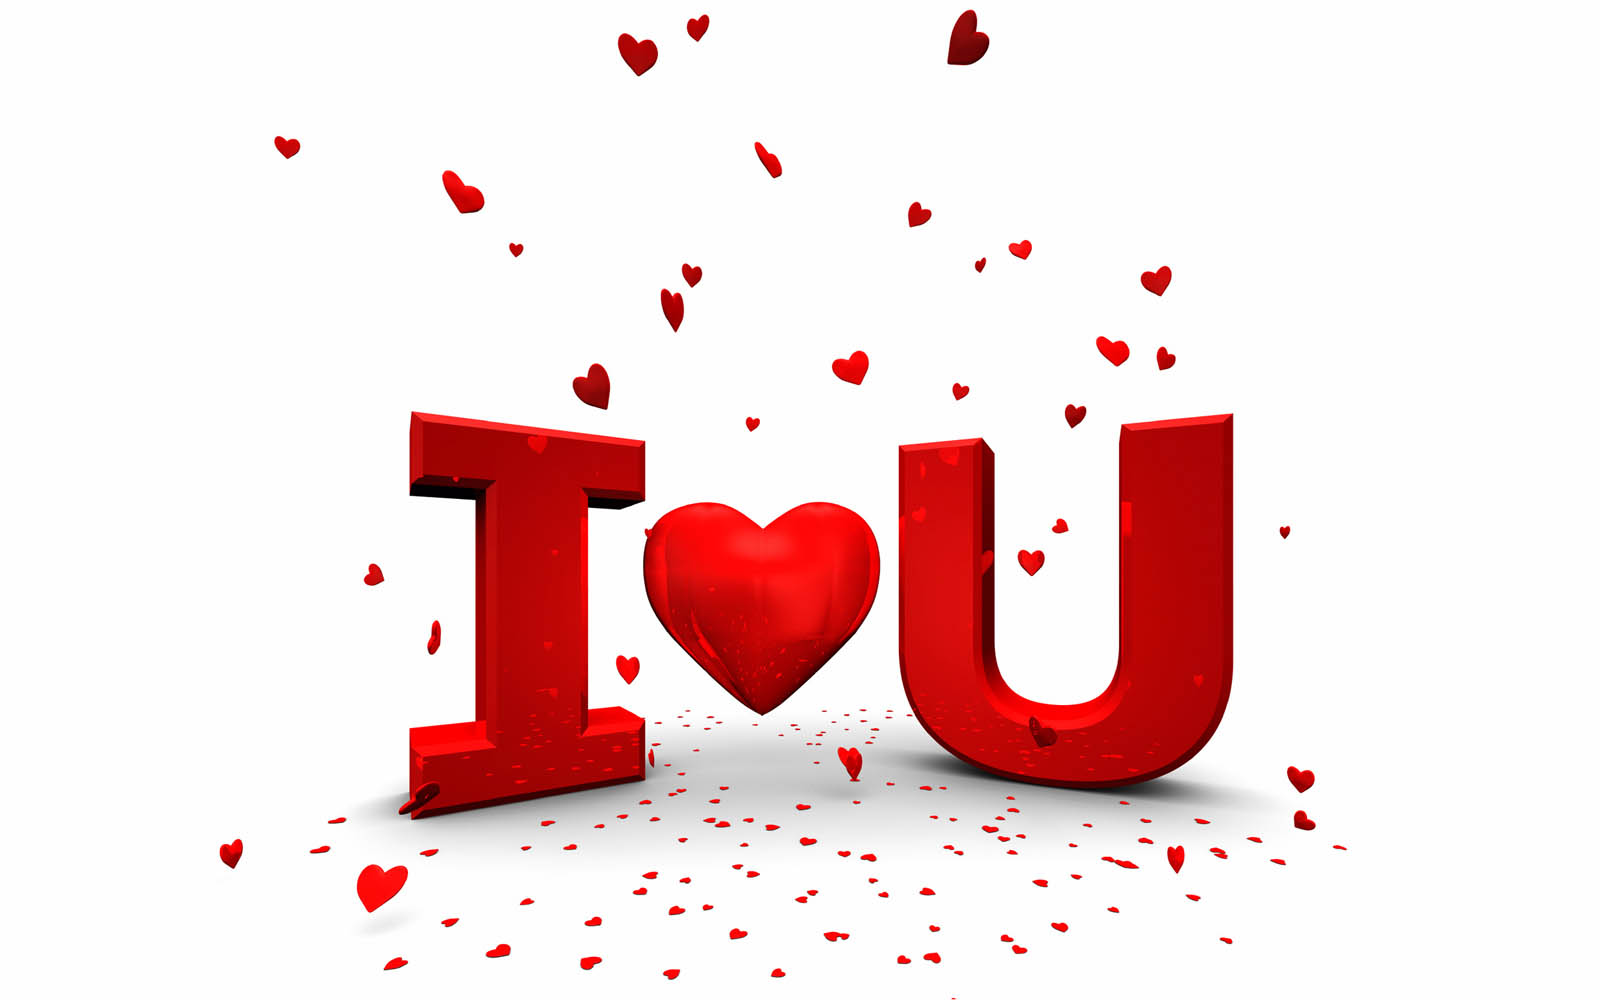 http://3.bp.blogspot.com/-UmXvK32aTKI/T8sQCs4ZzkI/AAAAAAAADhQ/tK5OeVjQe3U/s1600/I+Love+You+Wallpapers+1.jpg